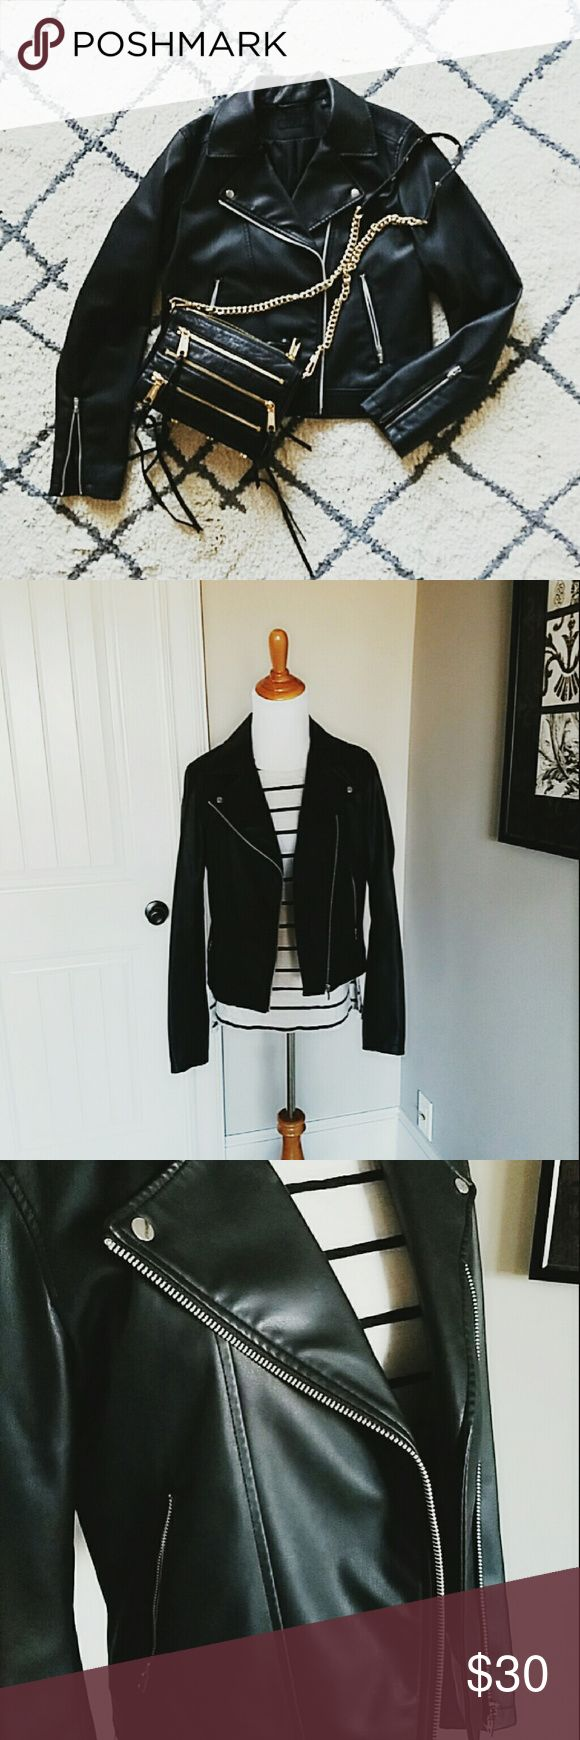 UNIQLO faux leather moto jacket size m classic black moto jacket from UNIQLO, bought it a couple of months ago, size m. worn a handful times, great condition Uniqlo Jackets & Coats